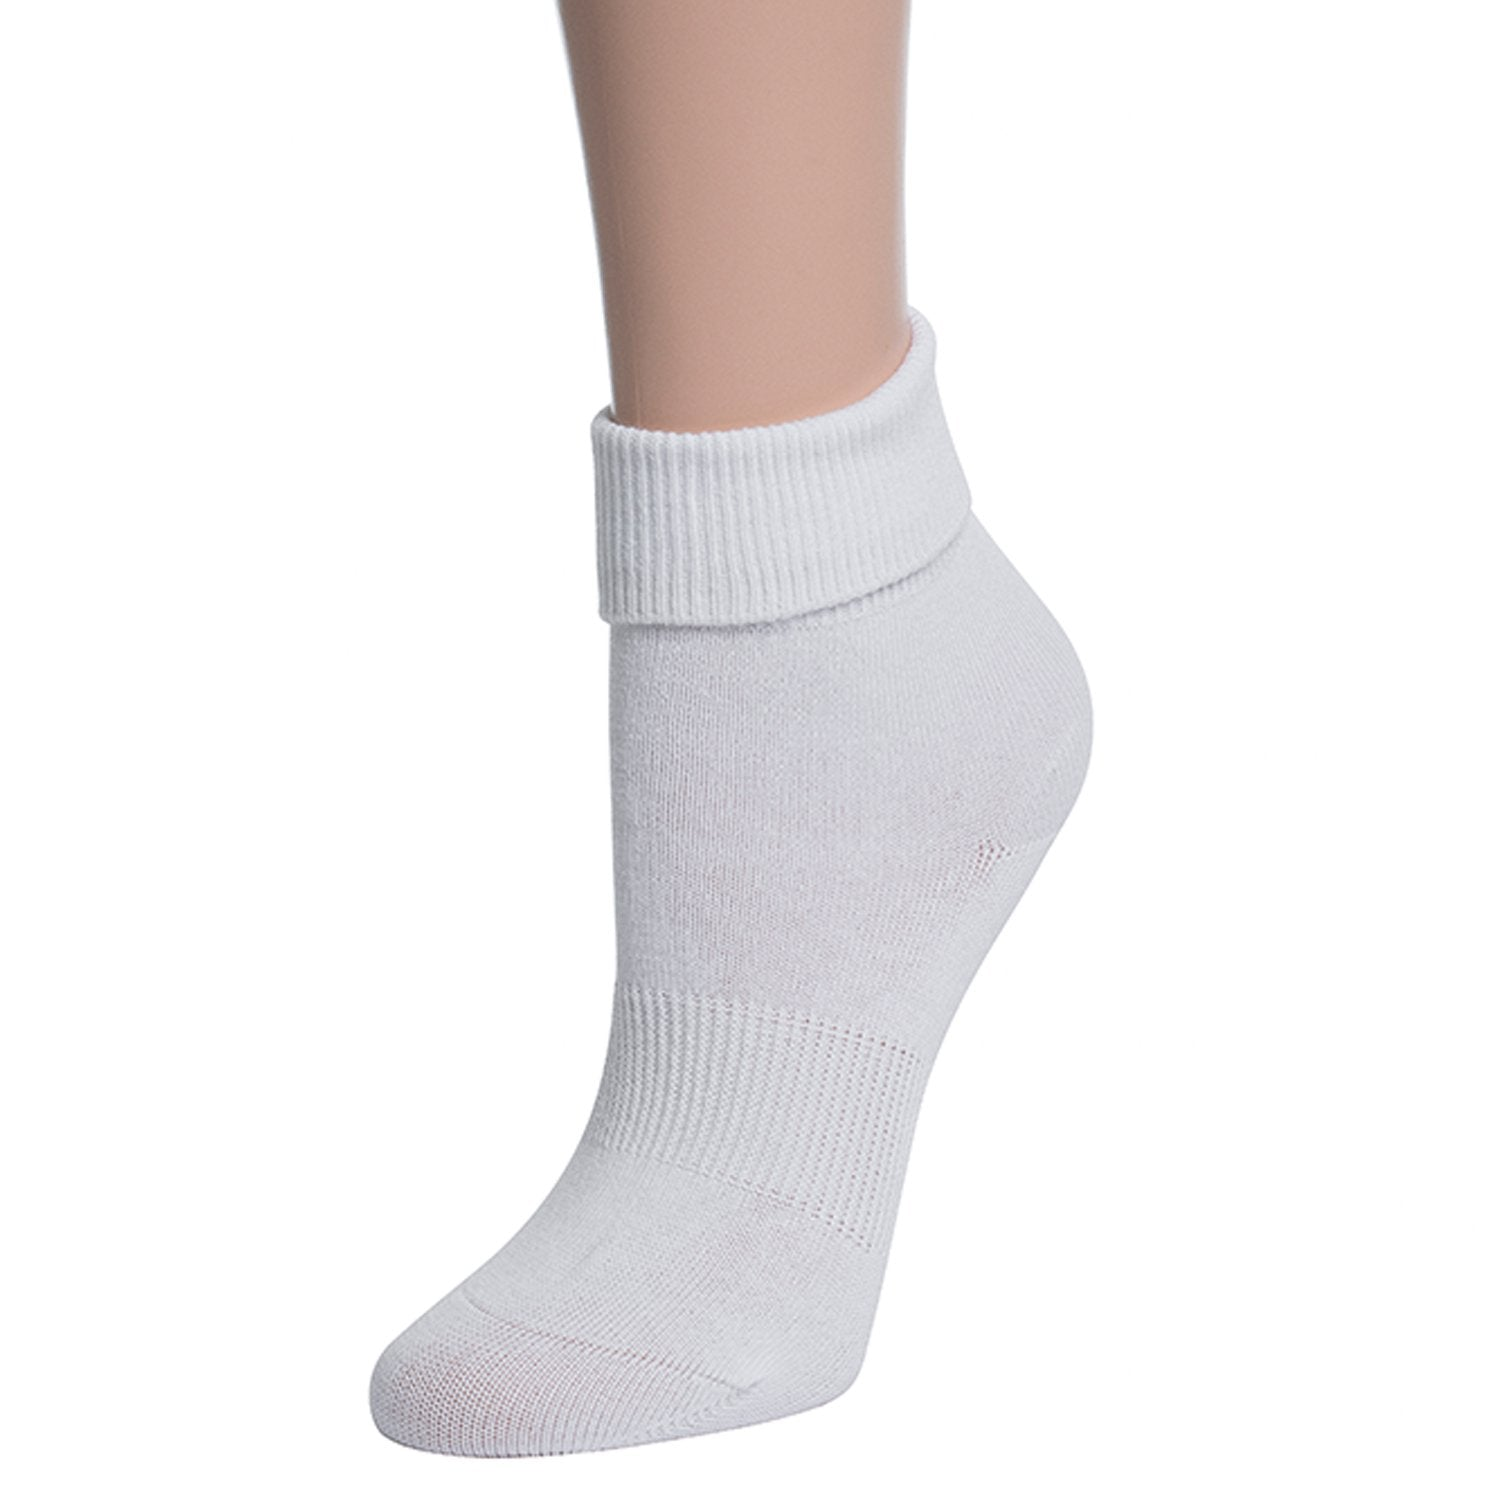 Valour Sport Cotton School Socks, sold in a 3-pack - White Roll Top